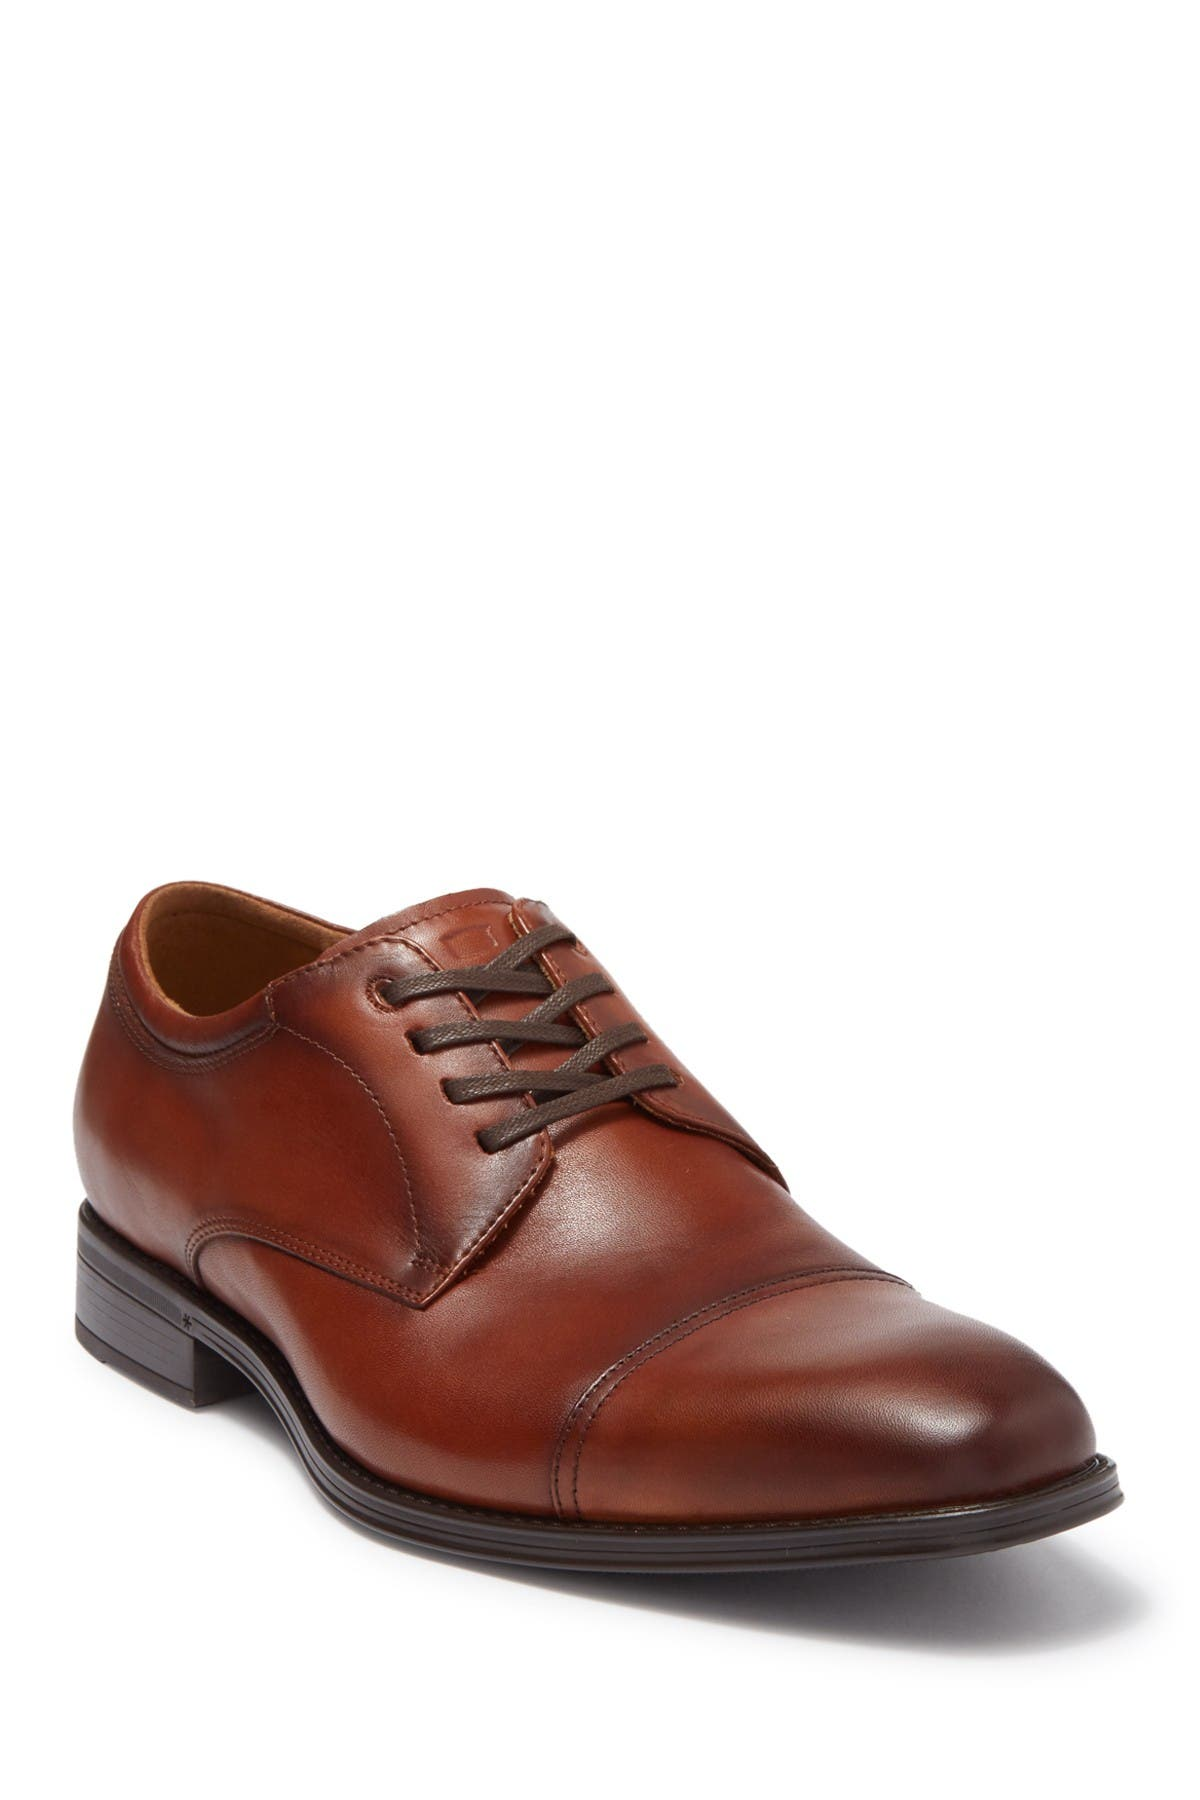 Image of Florsheim Alanzo Leather Cap Toe Oxford